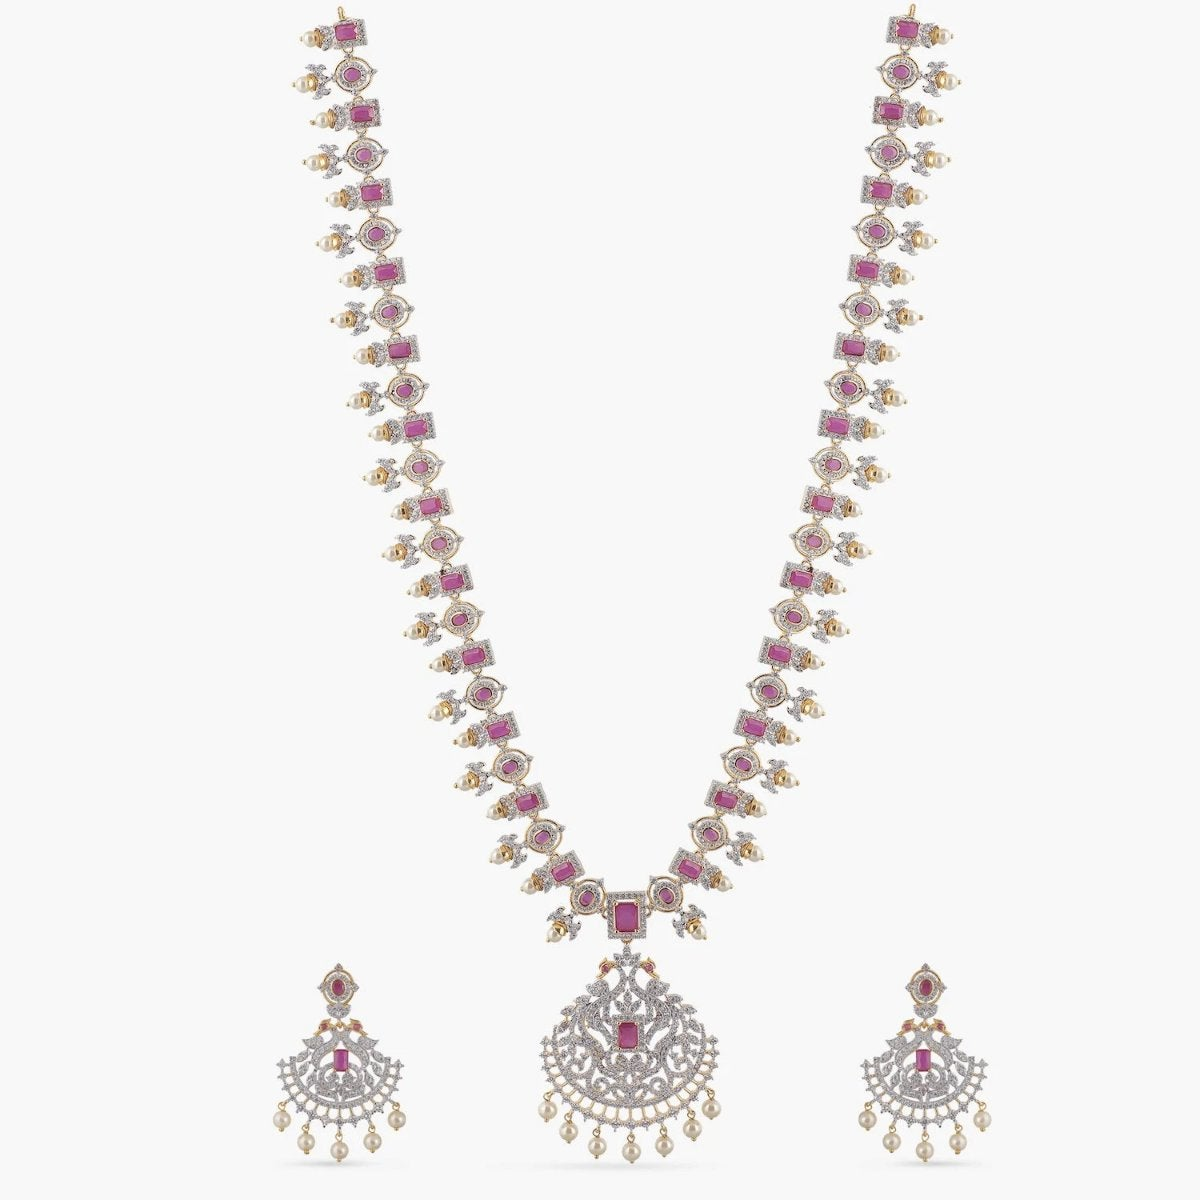 Ushna Nakshatra CZ Long Necklace Set